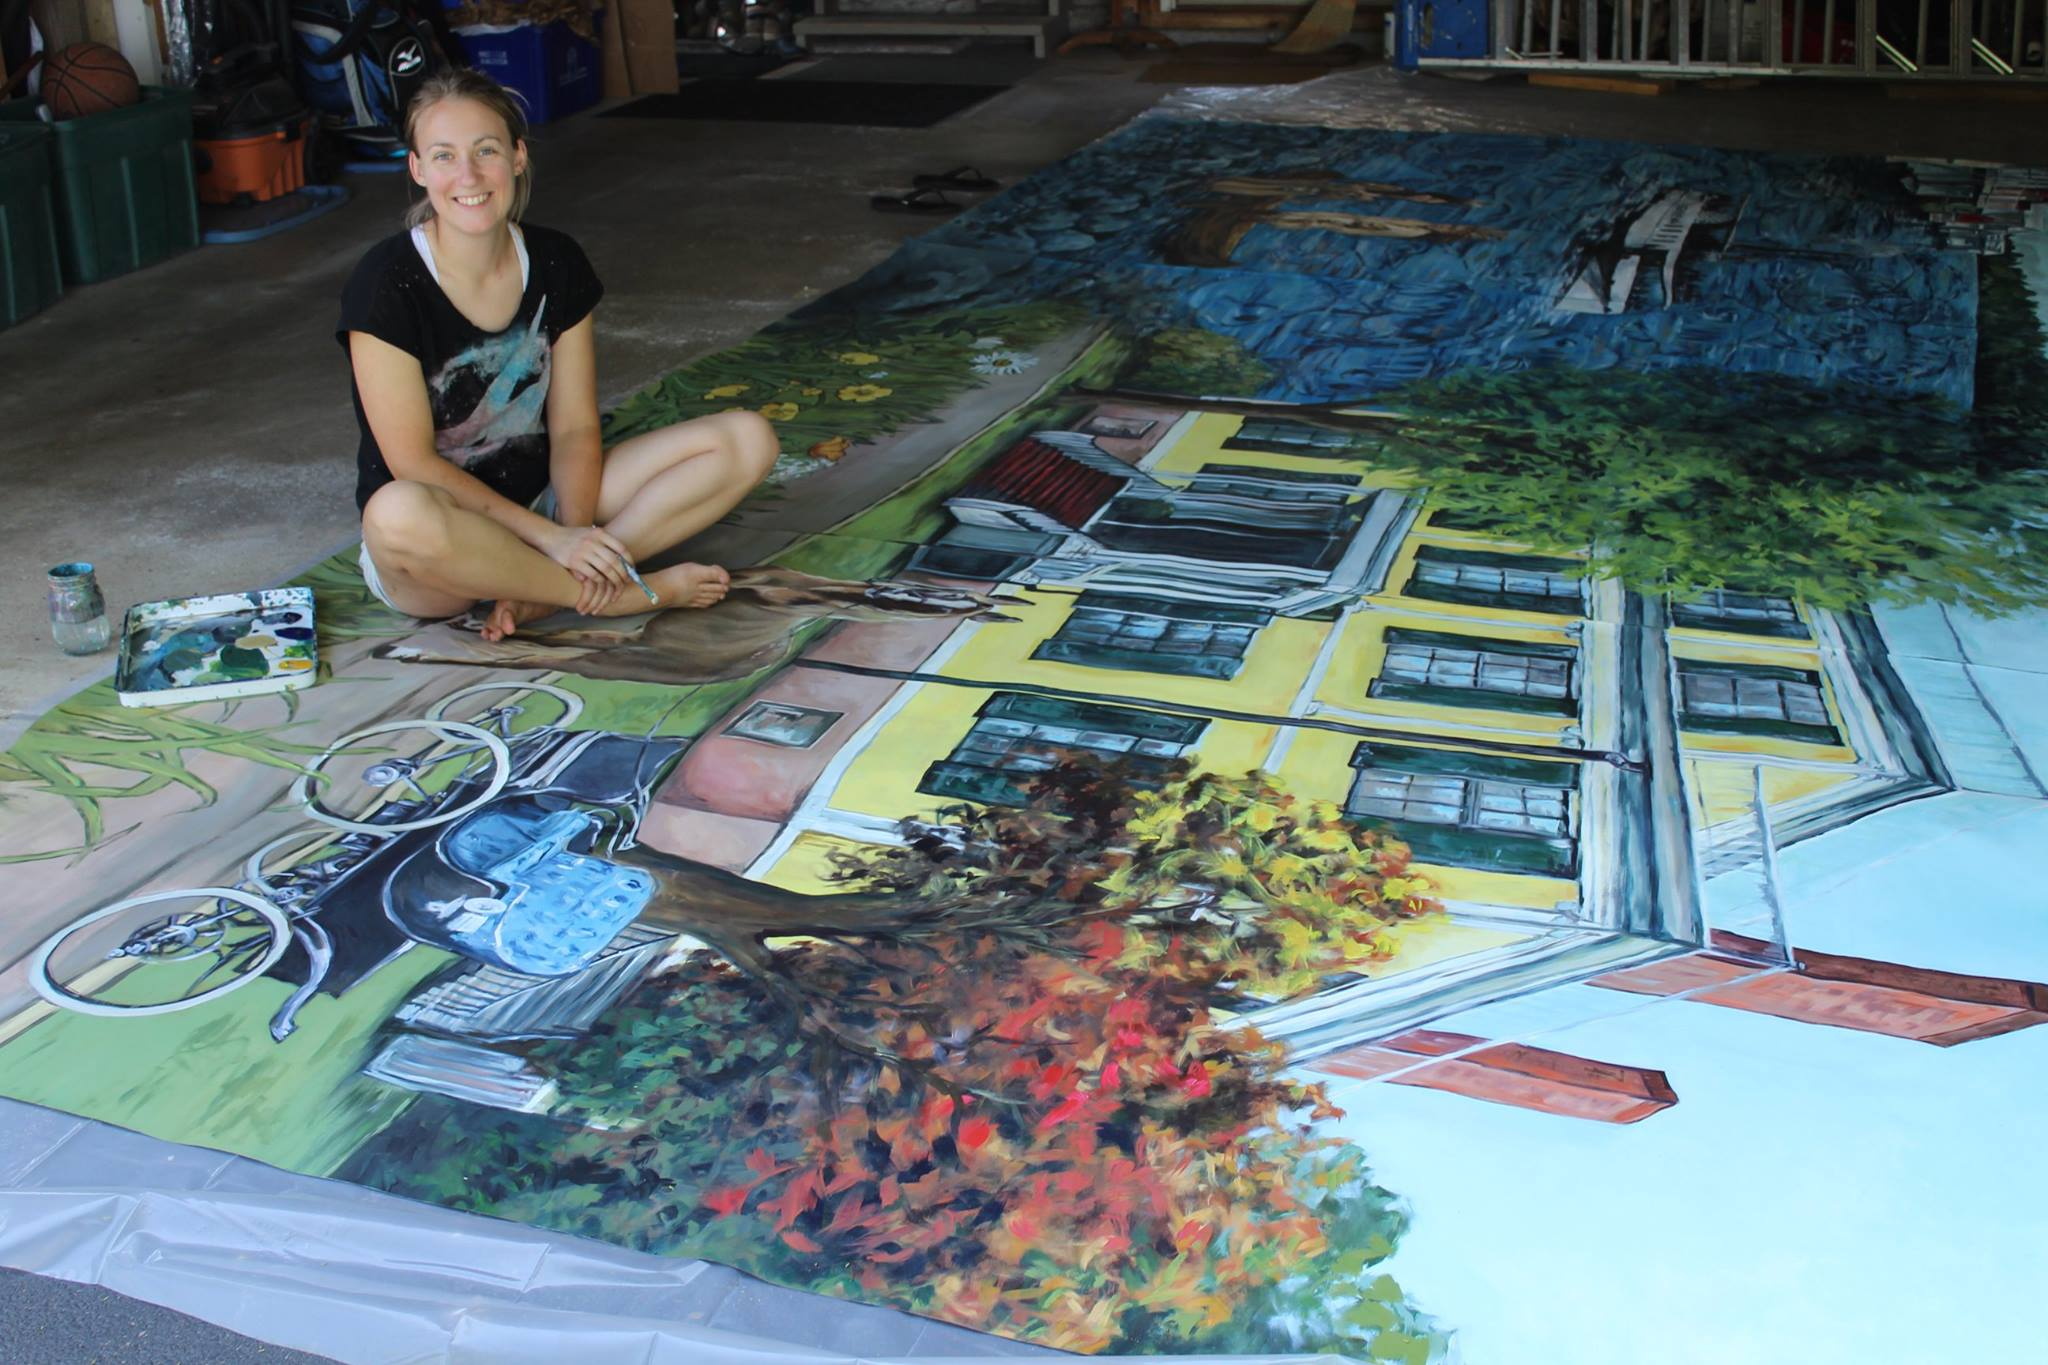 Canandaigua's Commons Park Mural: Highlighting Artist Chloe Smith